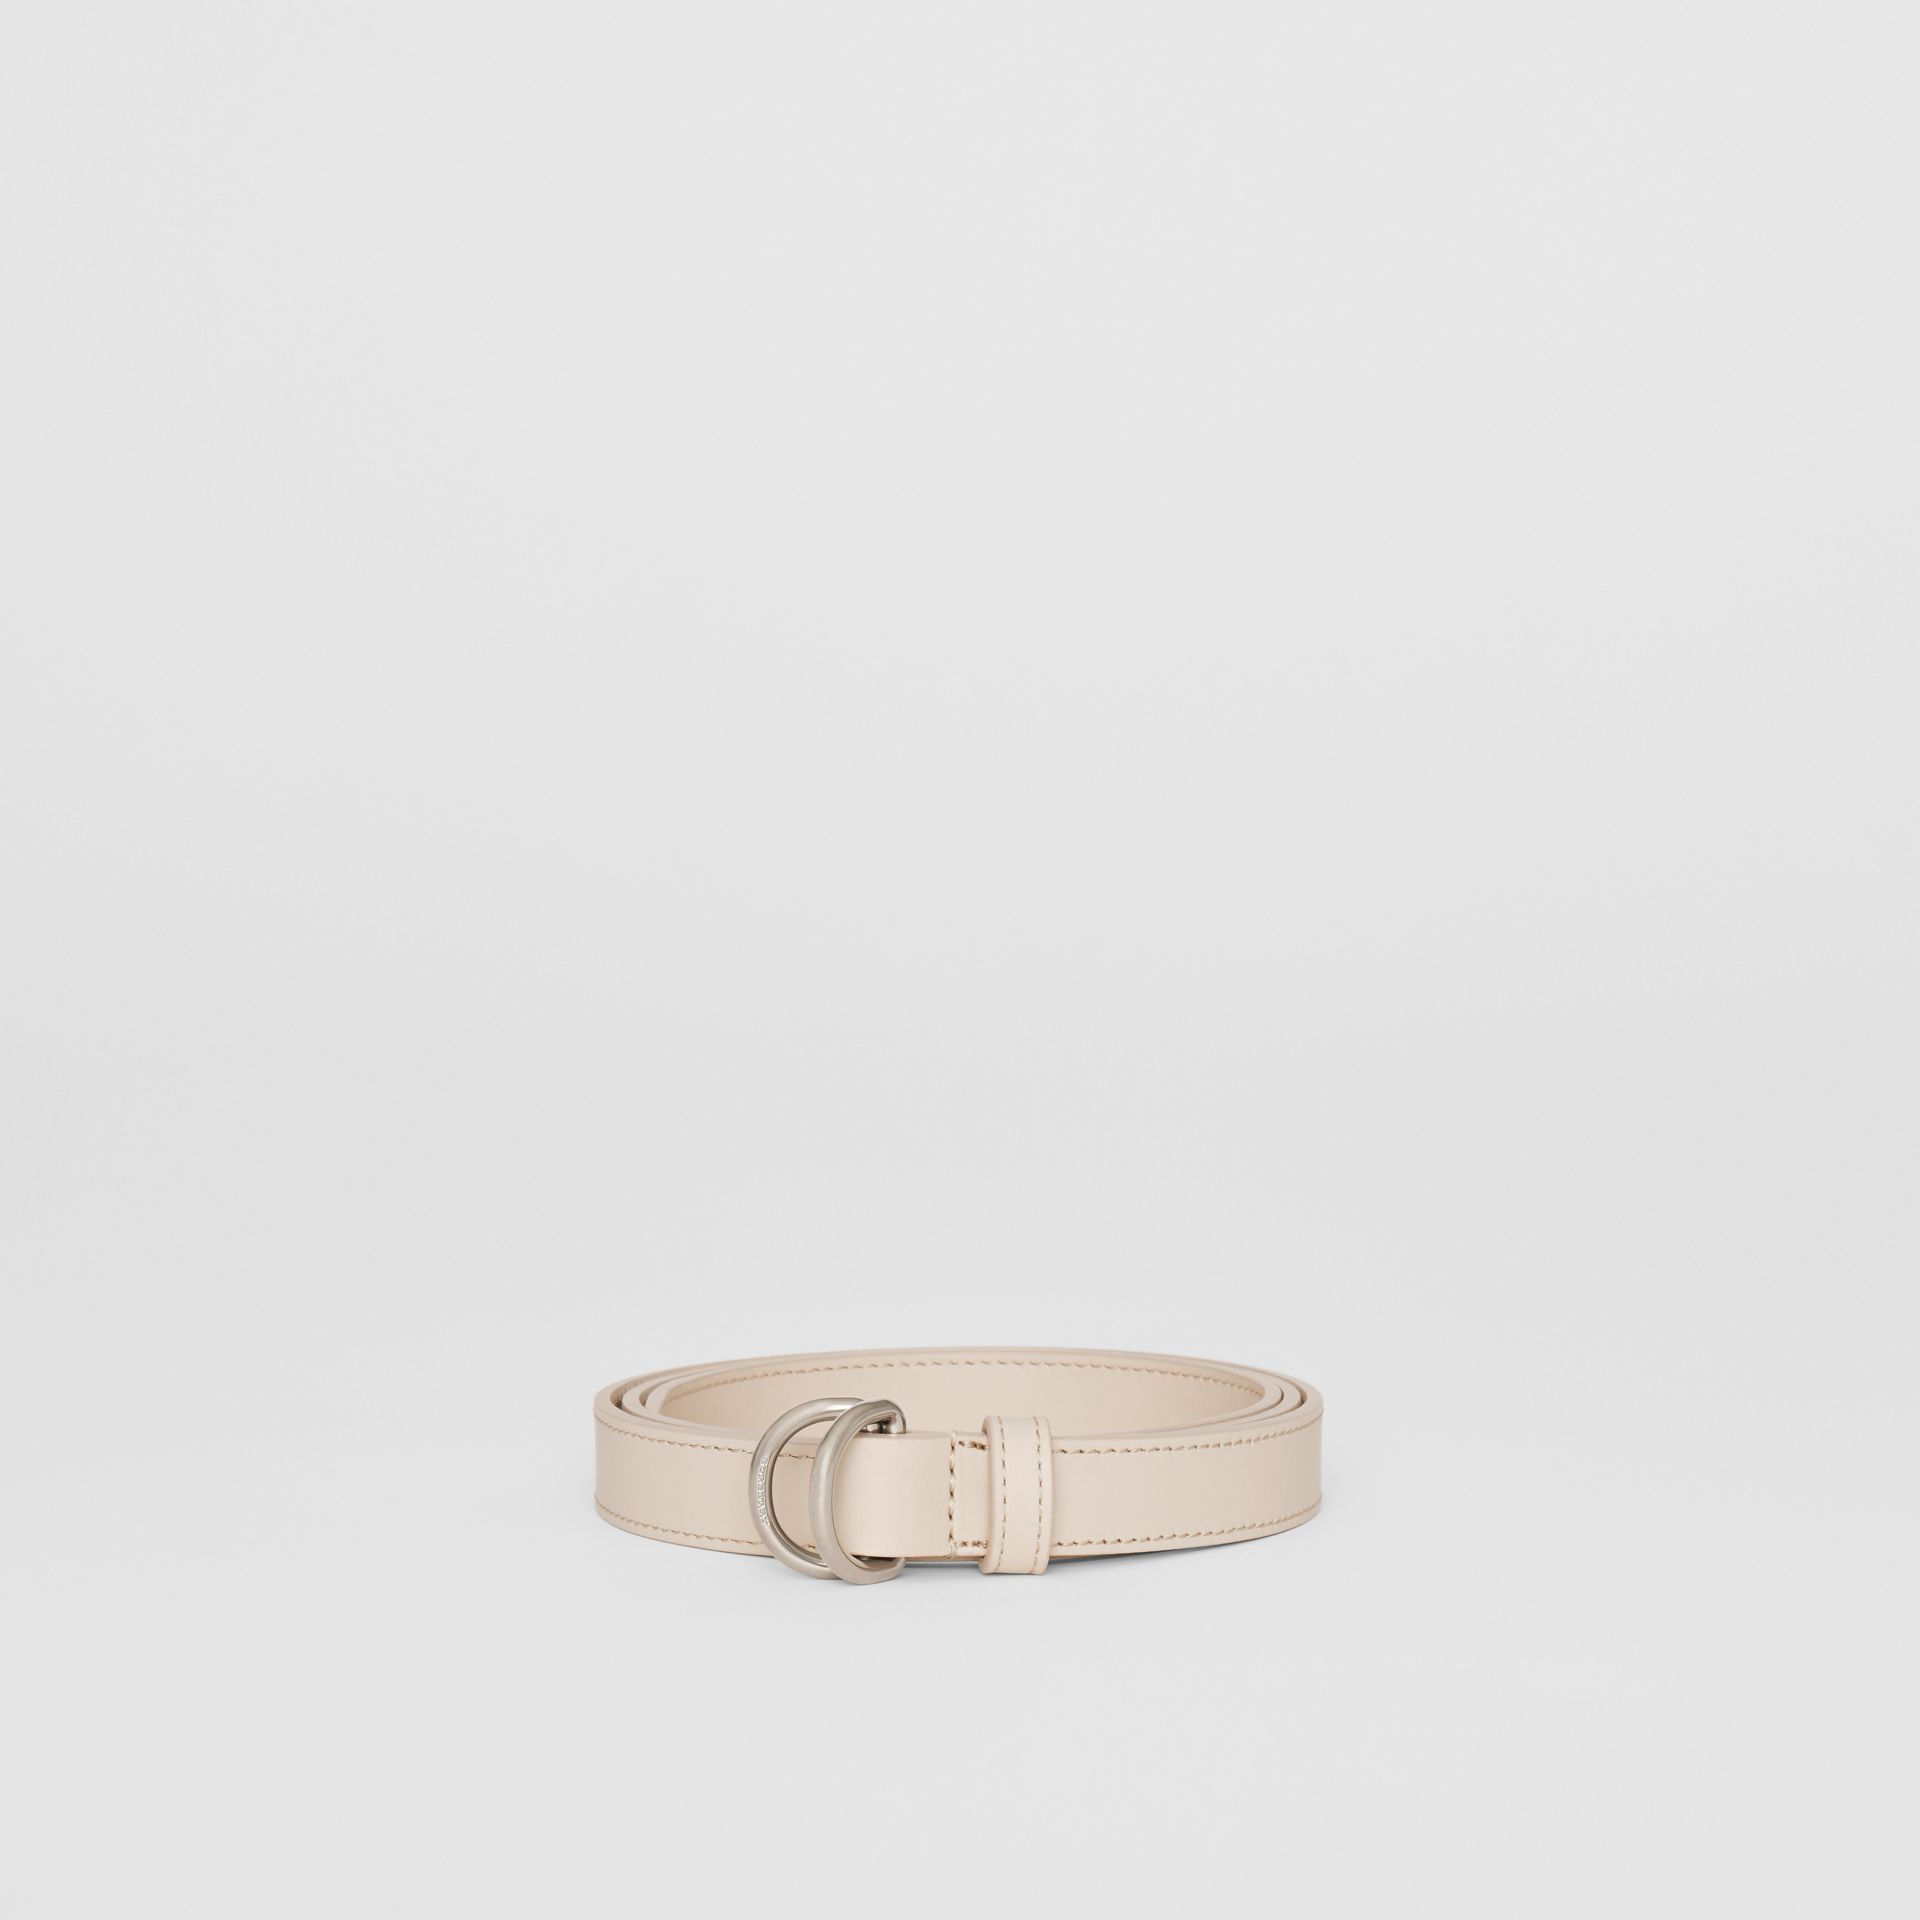 Slim Leather Double D-ring Belt in Limestone - Women | Burberry - gallery image 3